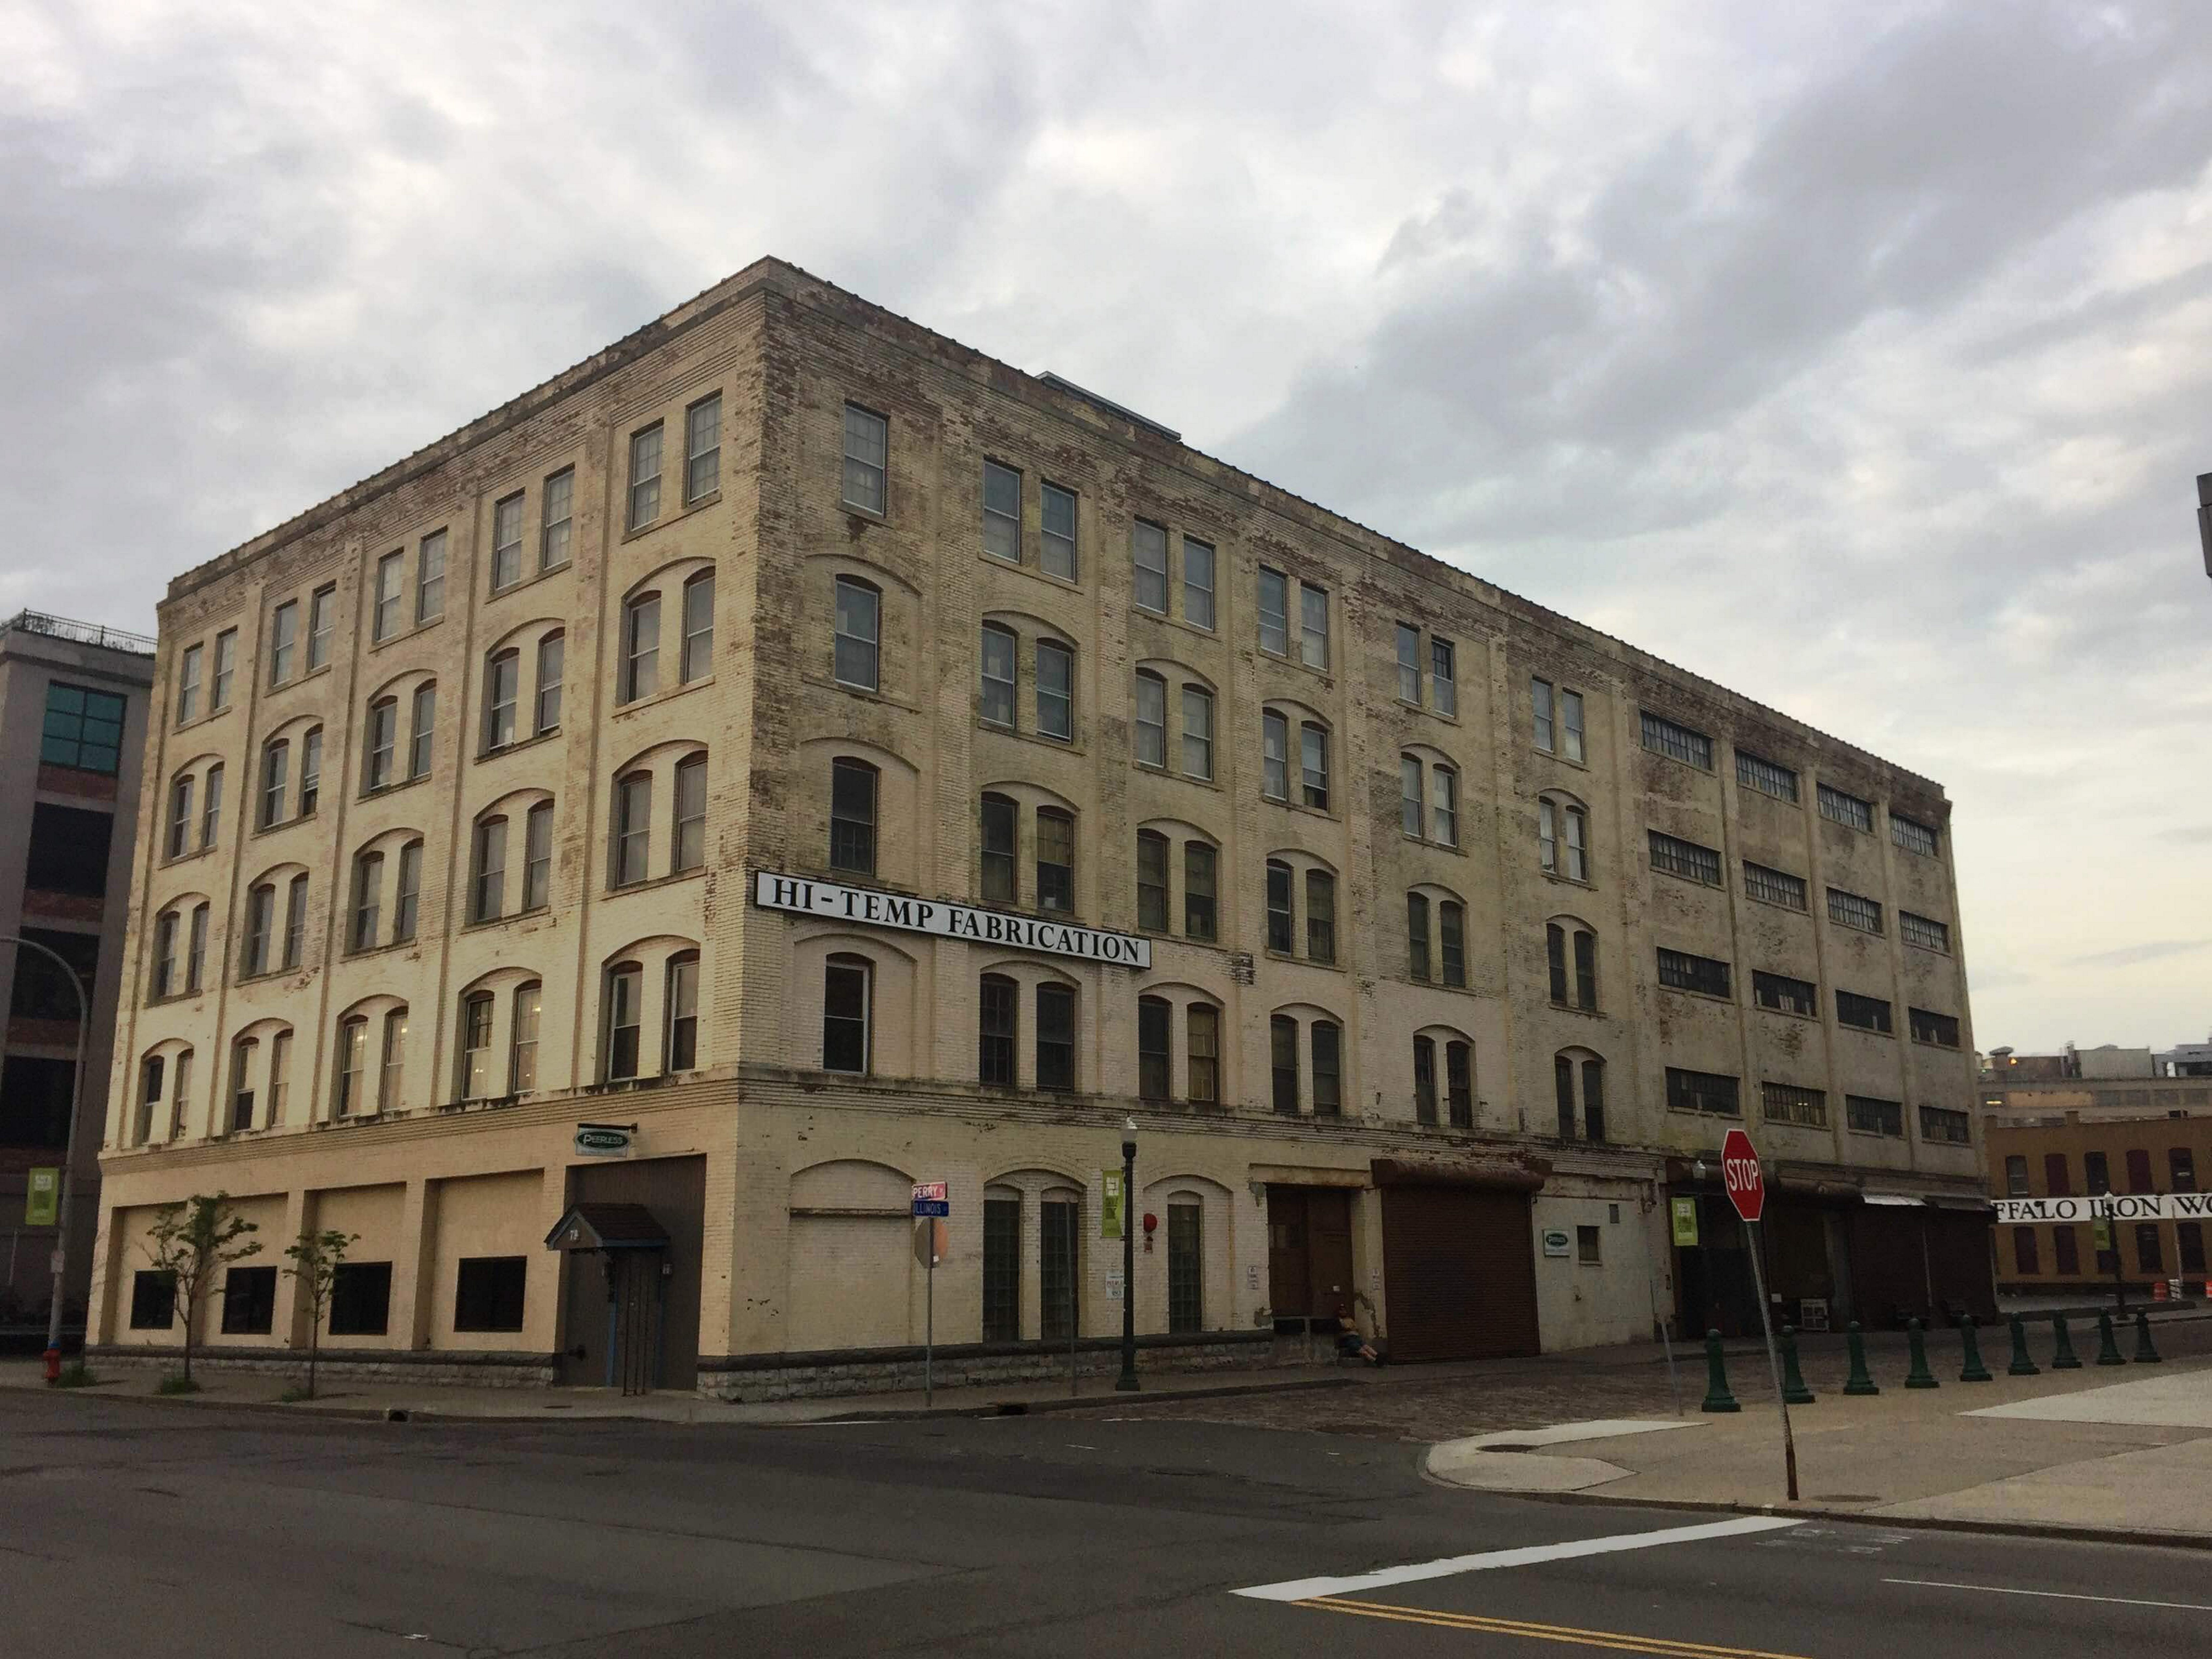 The century-old building at 79 Perry St. was constructed in 1914 for Peerless Mill Supply Co., which still operates there as Peerless Inc. It shares the building with Hi-Temp. Both are expected to move following the building sale. (Aaron Besecker/Buffalo News)